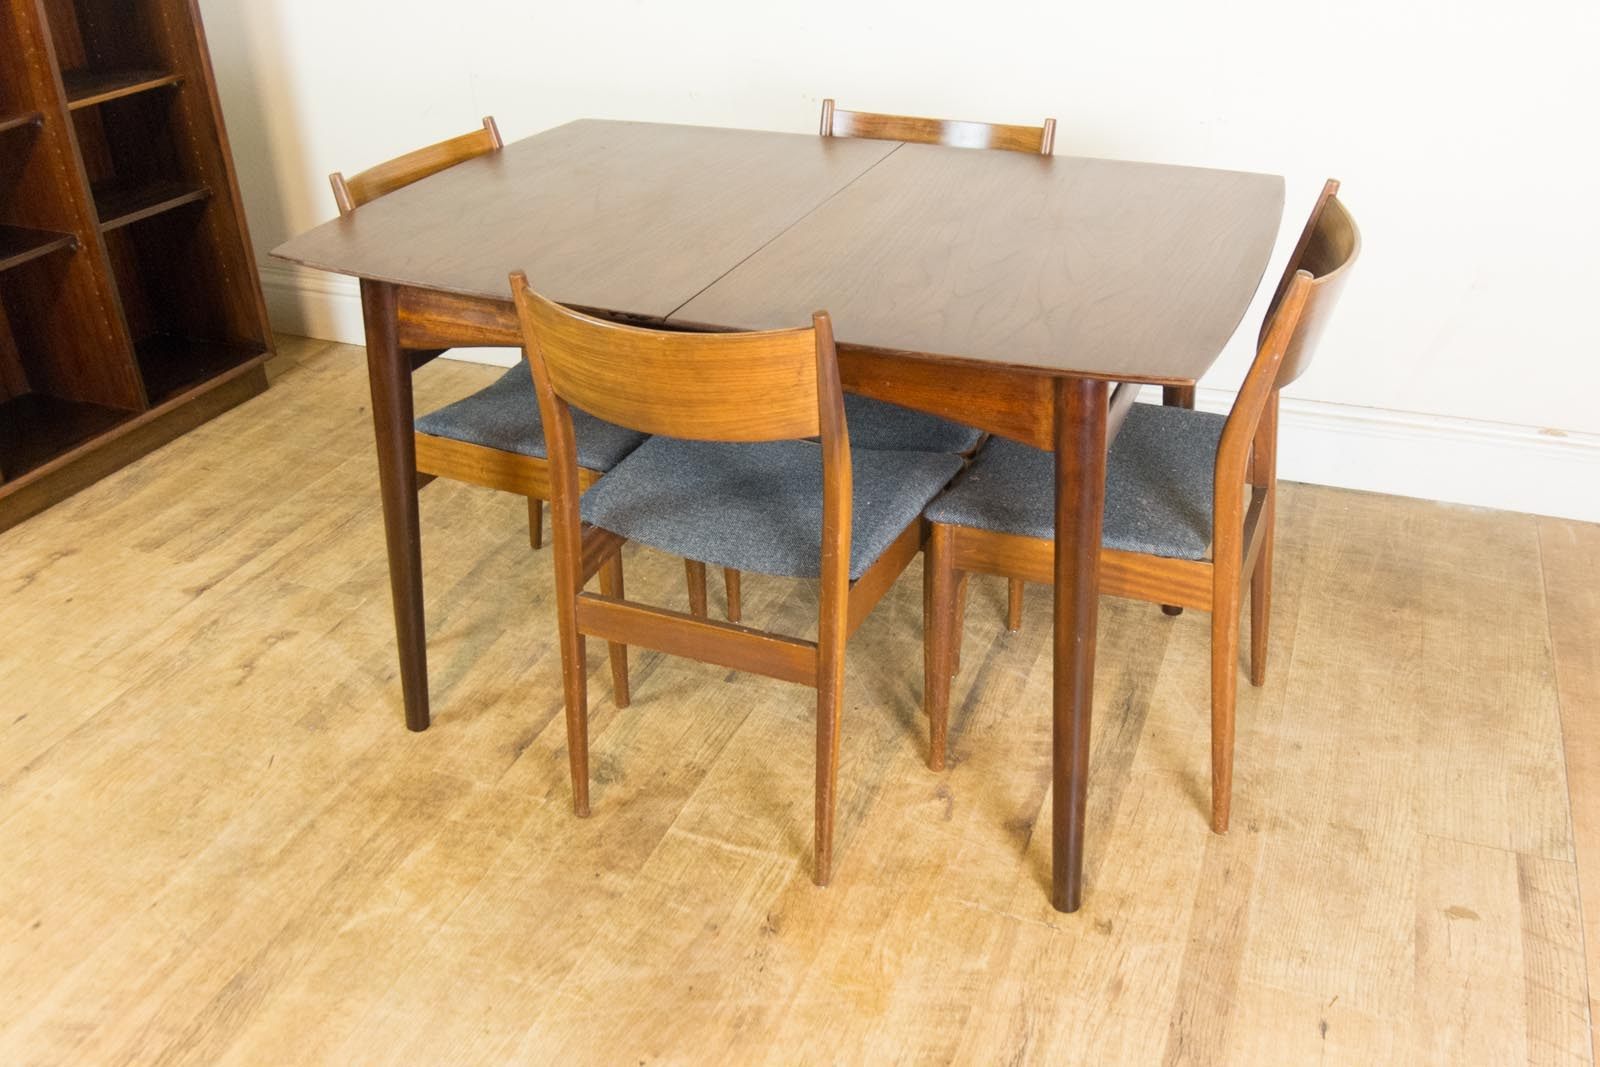 Vintage Retro Afromosia Extending Dining Table And 4 Teak Chairs EBay